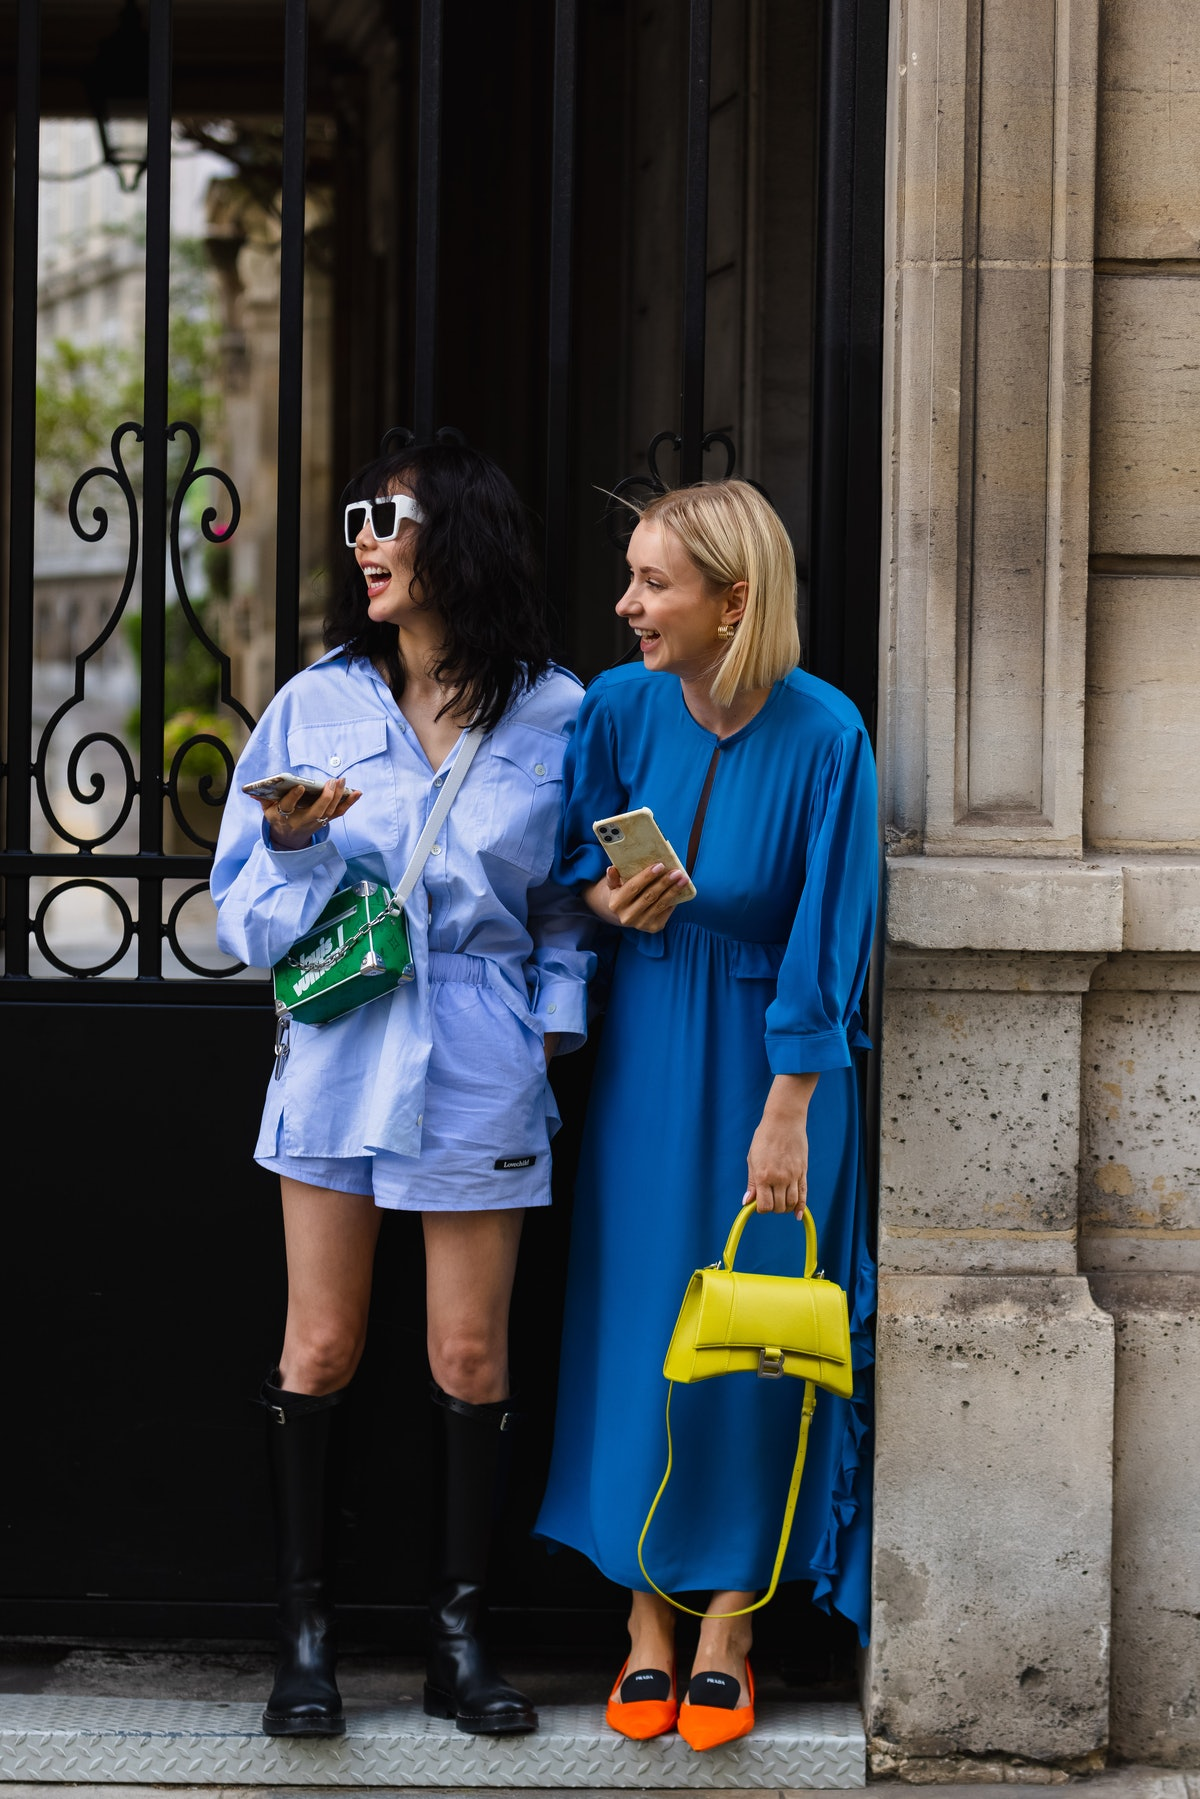 Street style photo from Fall 2021 Haute Couture week, photographed by Darrel Hunter for TZR.